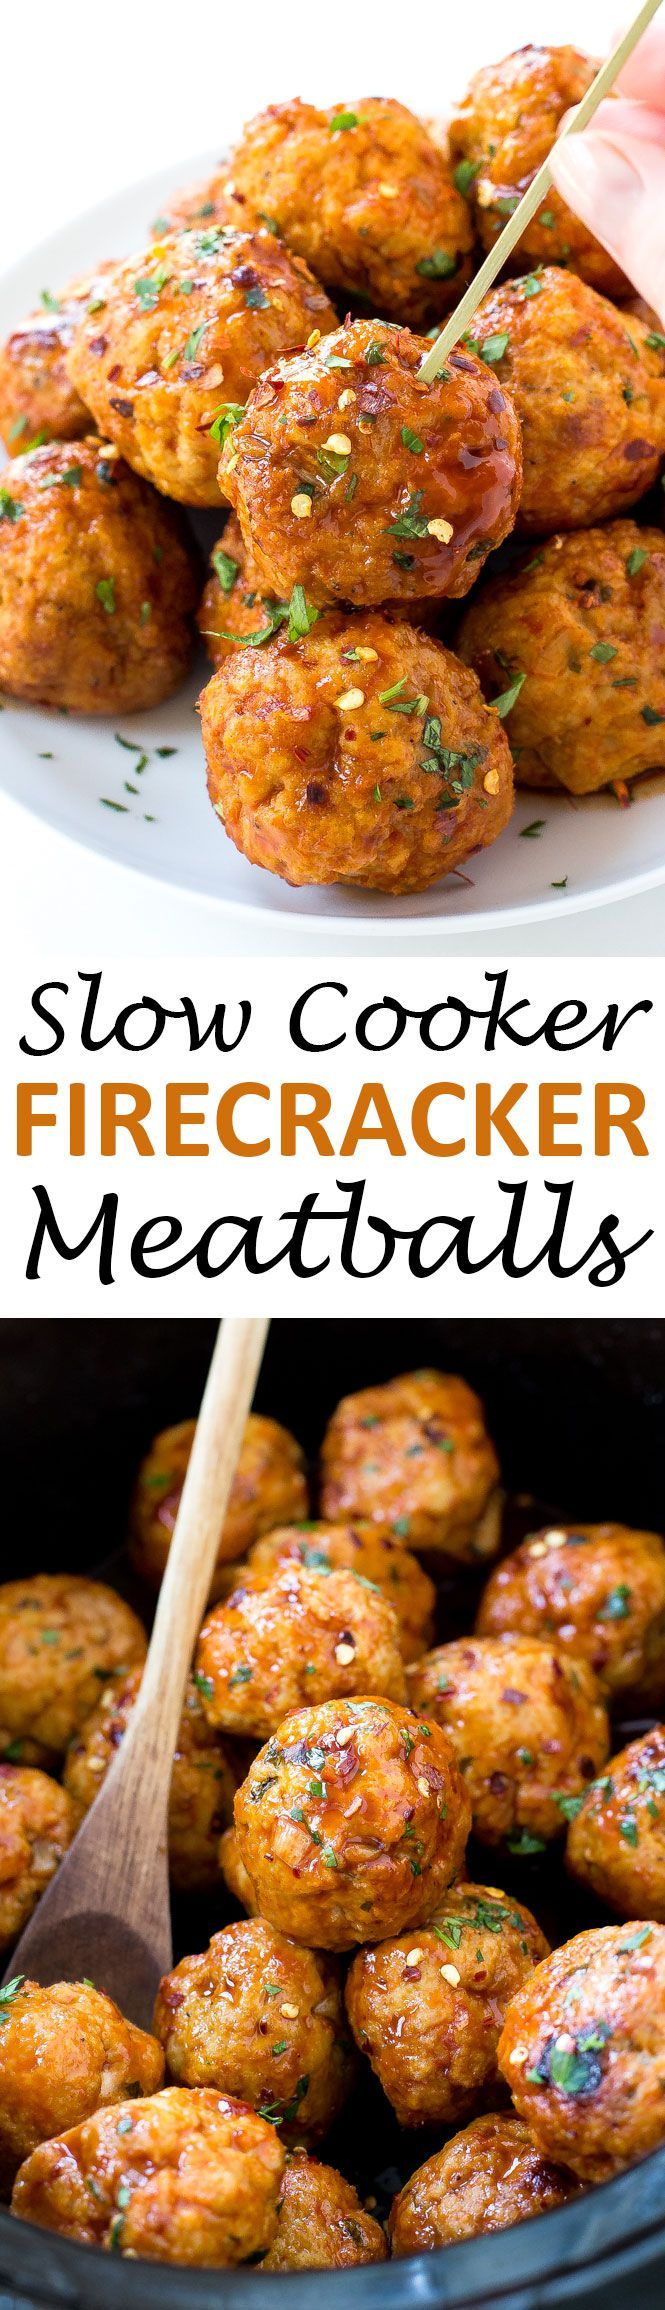 Slow Cooker Firecracker Chicken Meatballs                                                                                                                                                     More